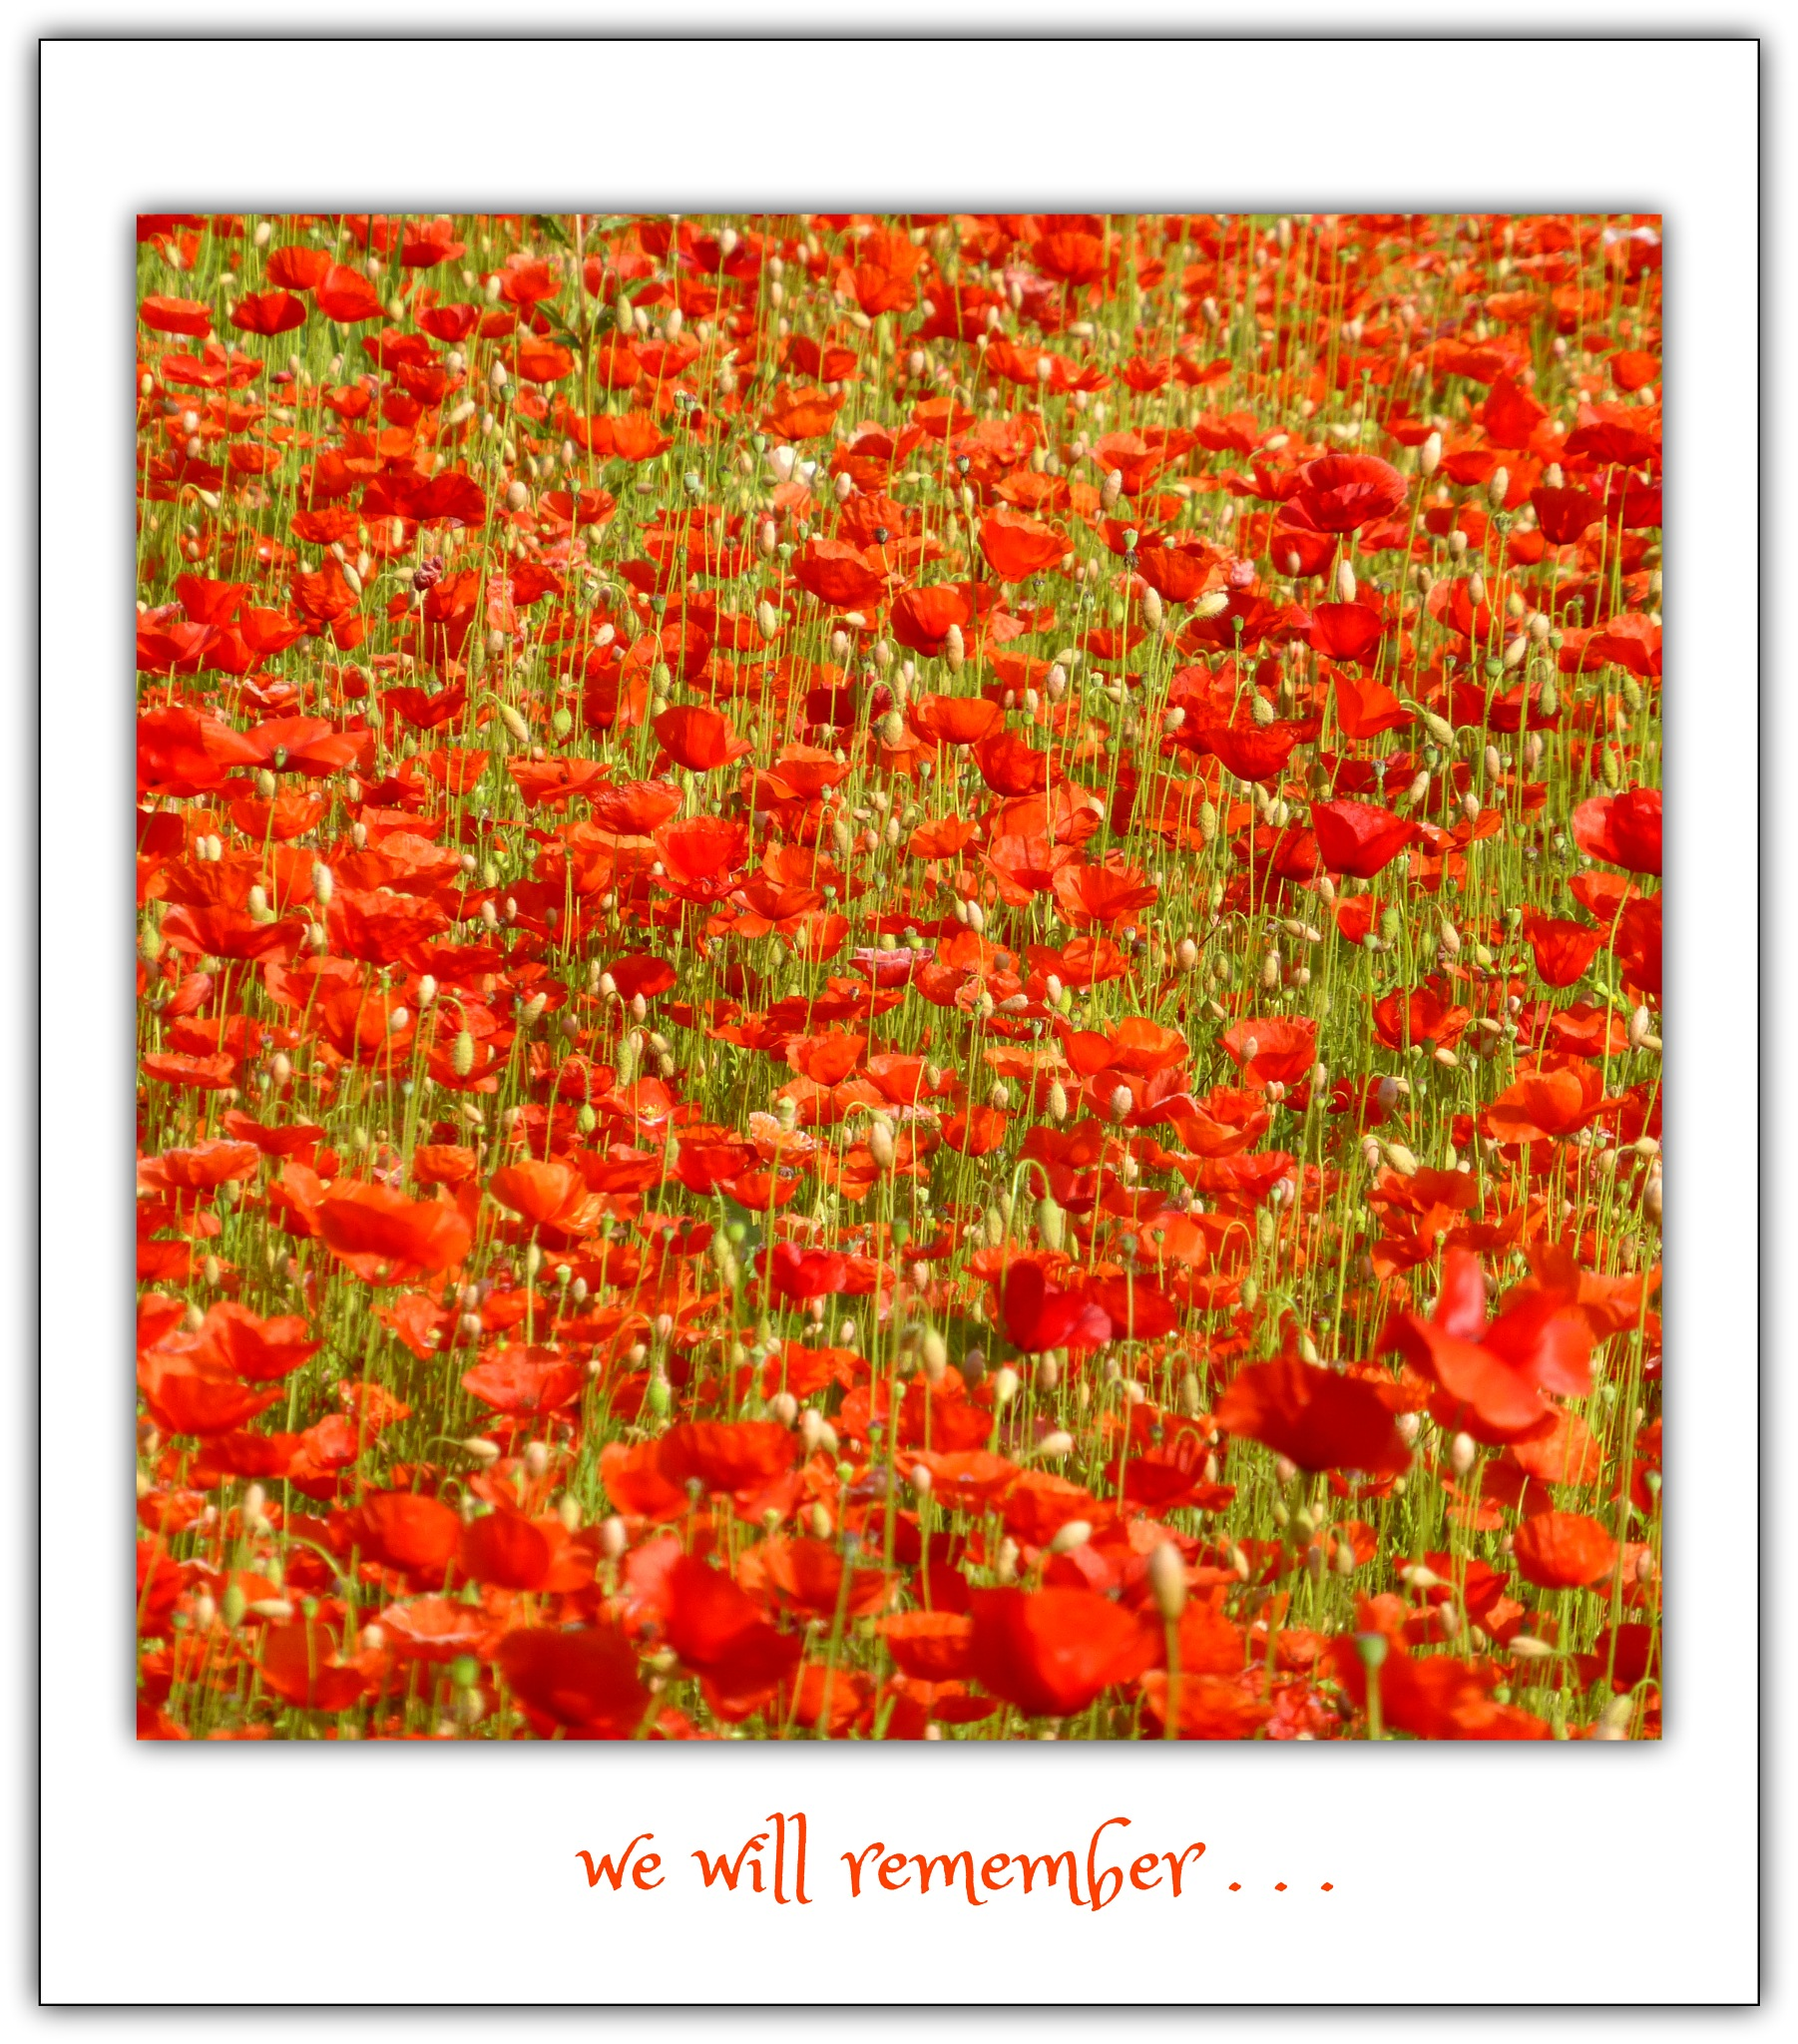 LEST WE FORGET . . .  by beverley